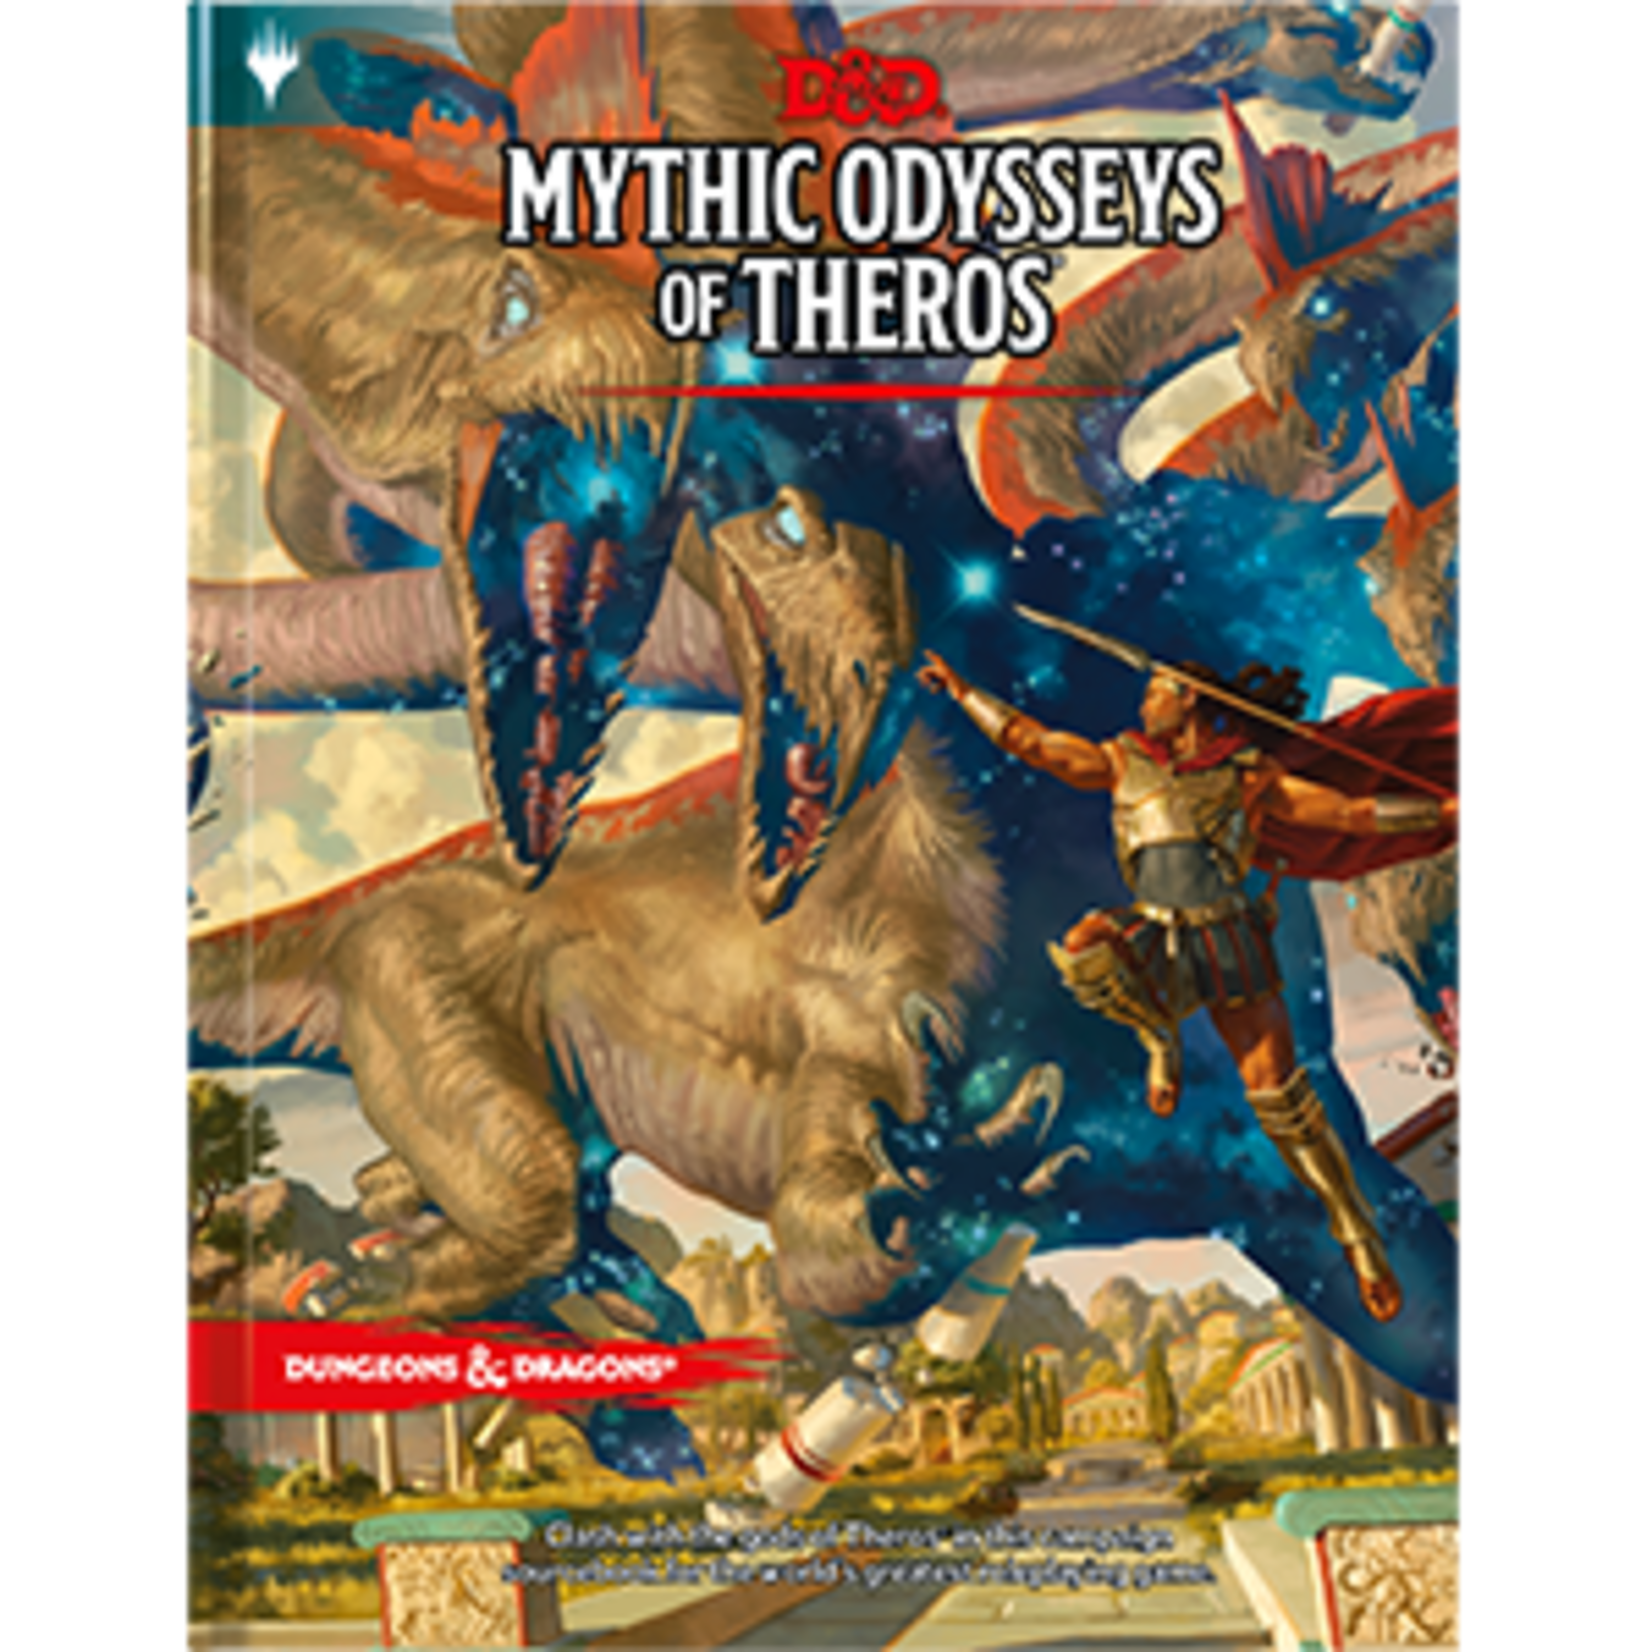 Dungeons & Dragons Dungeons & Dragons 5th Edition: Mythic Odysseys of Theros (Regular Cover)